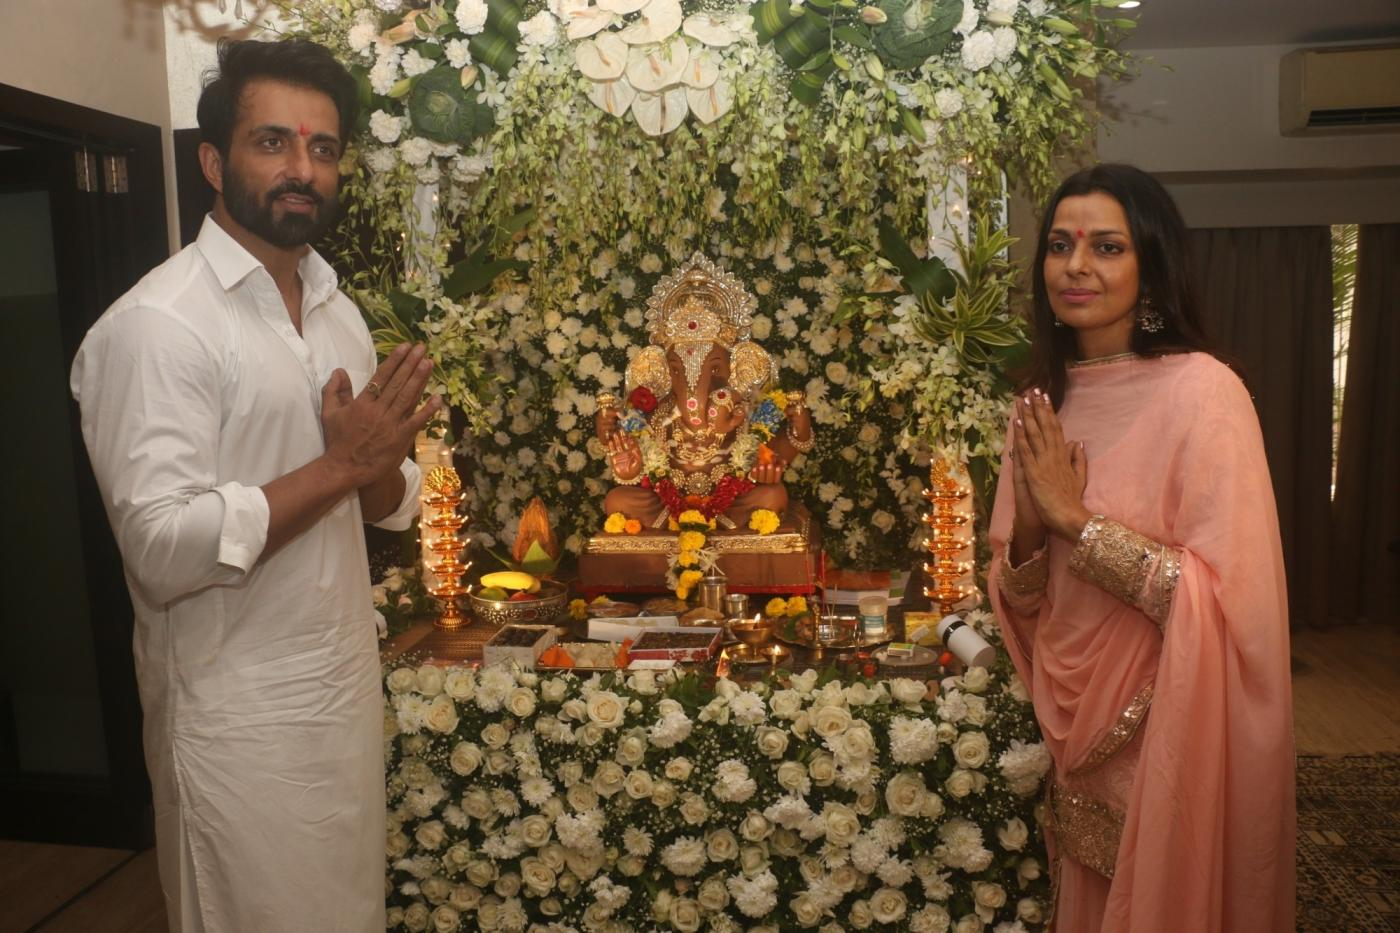 Mumbai: Actor Sonu Sood and his wife Sonali Sood offer prayers to Lord Ganesha on the occasion of Ganesh Chaturthi, in Mumbai on Sept 13, 2018. (Photo: IANS) by .